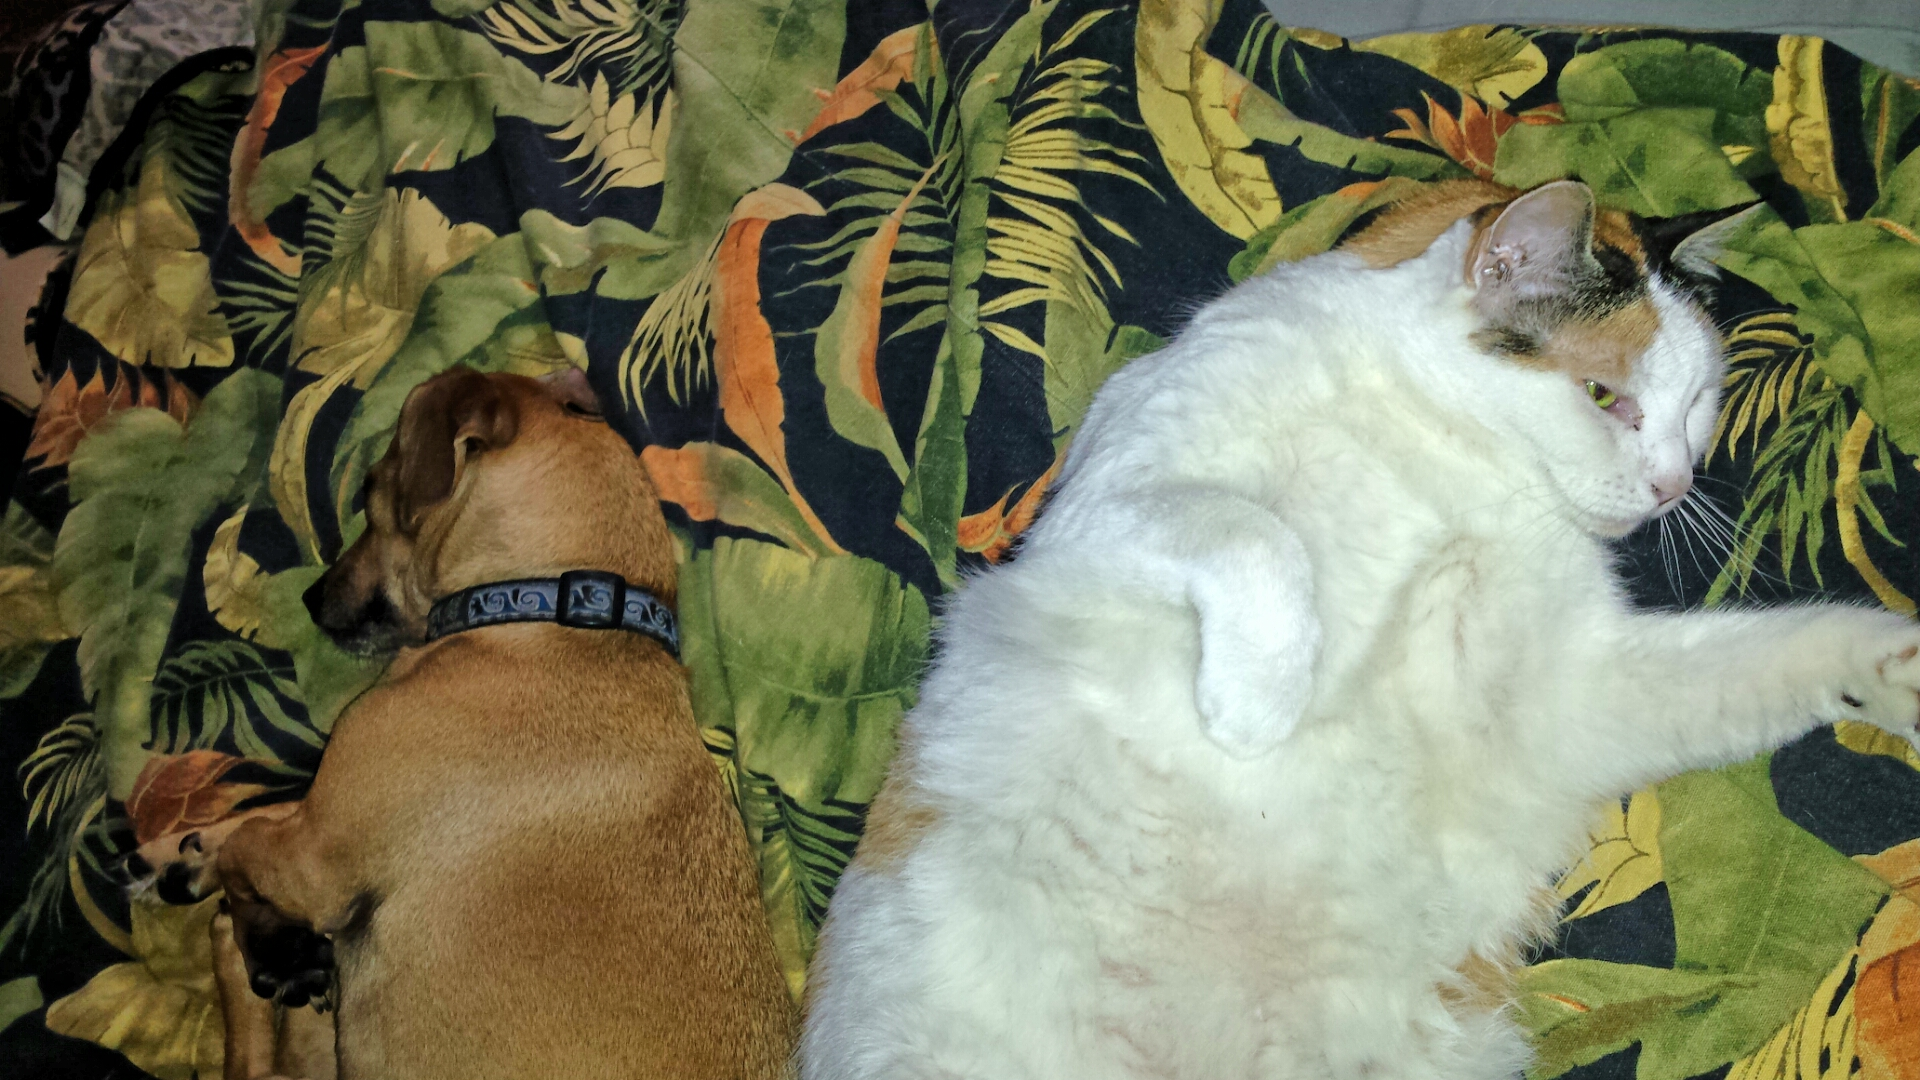 Canine vs. Feline. Doodle and Tia - two parties on the bedspread of life. Photo (c) Barb Ayers, DogDiary.org